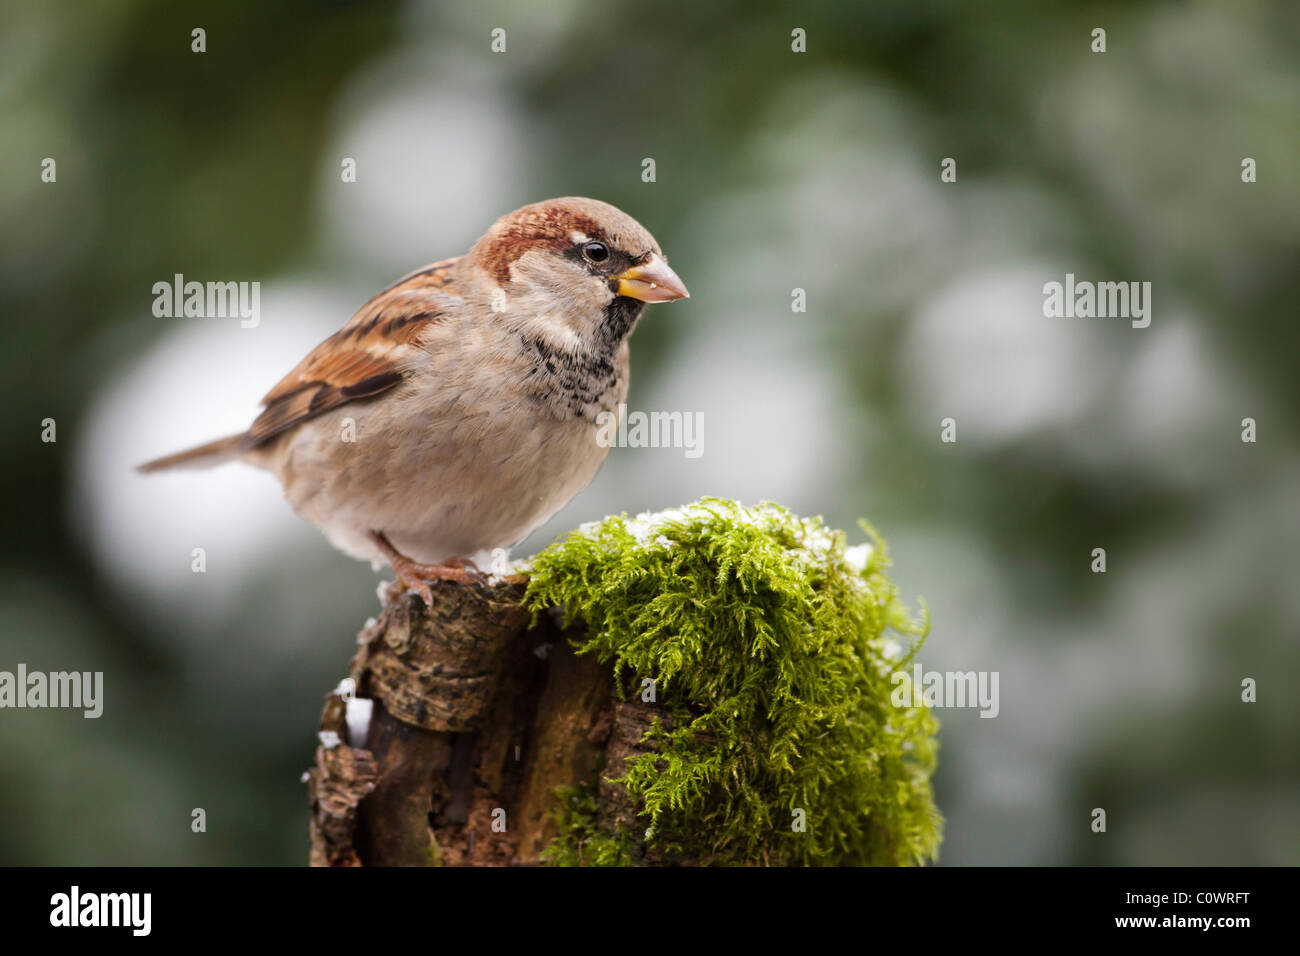 House Sparrow (Passer domesticus) adult male, perched on mossy tree stump, Norfolk, UK. - Stock Image